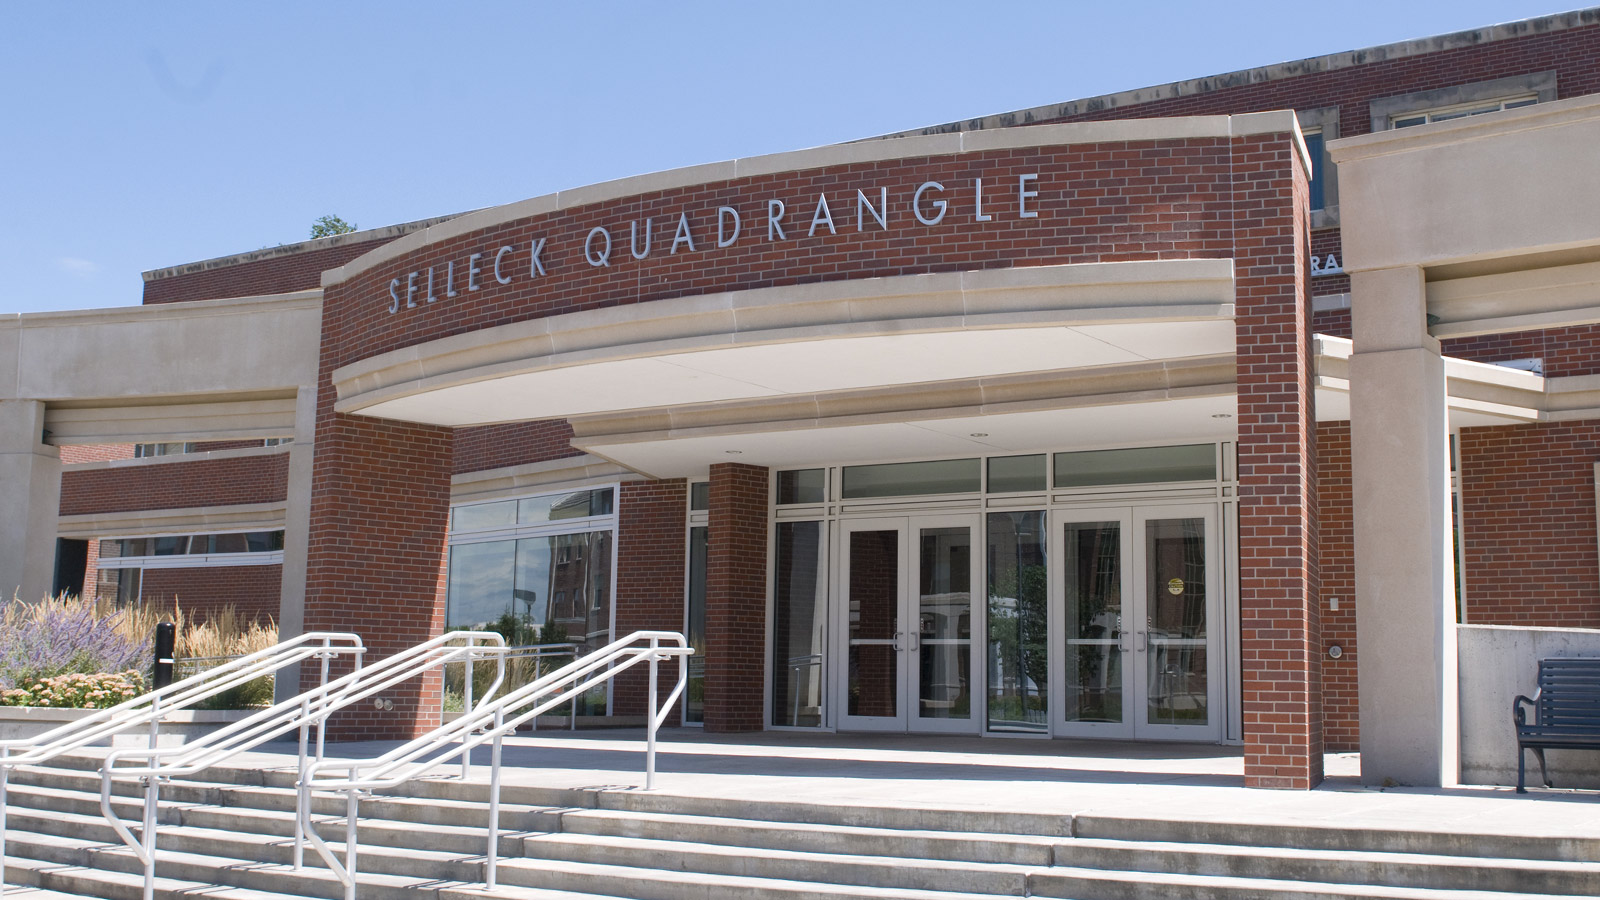 Selleck Quadrangle exterior photo